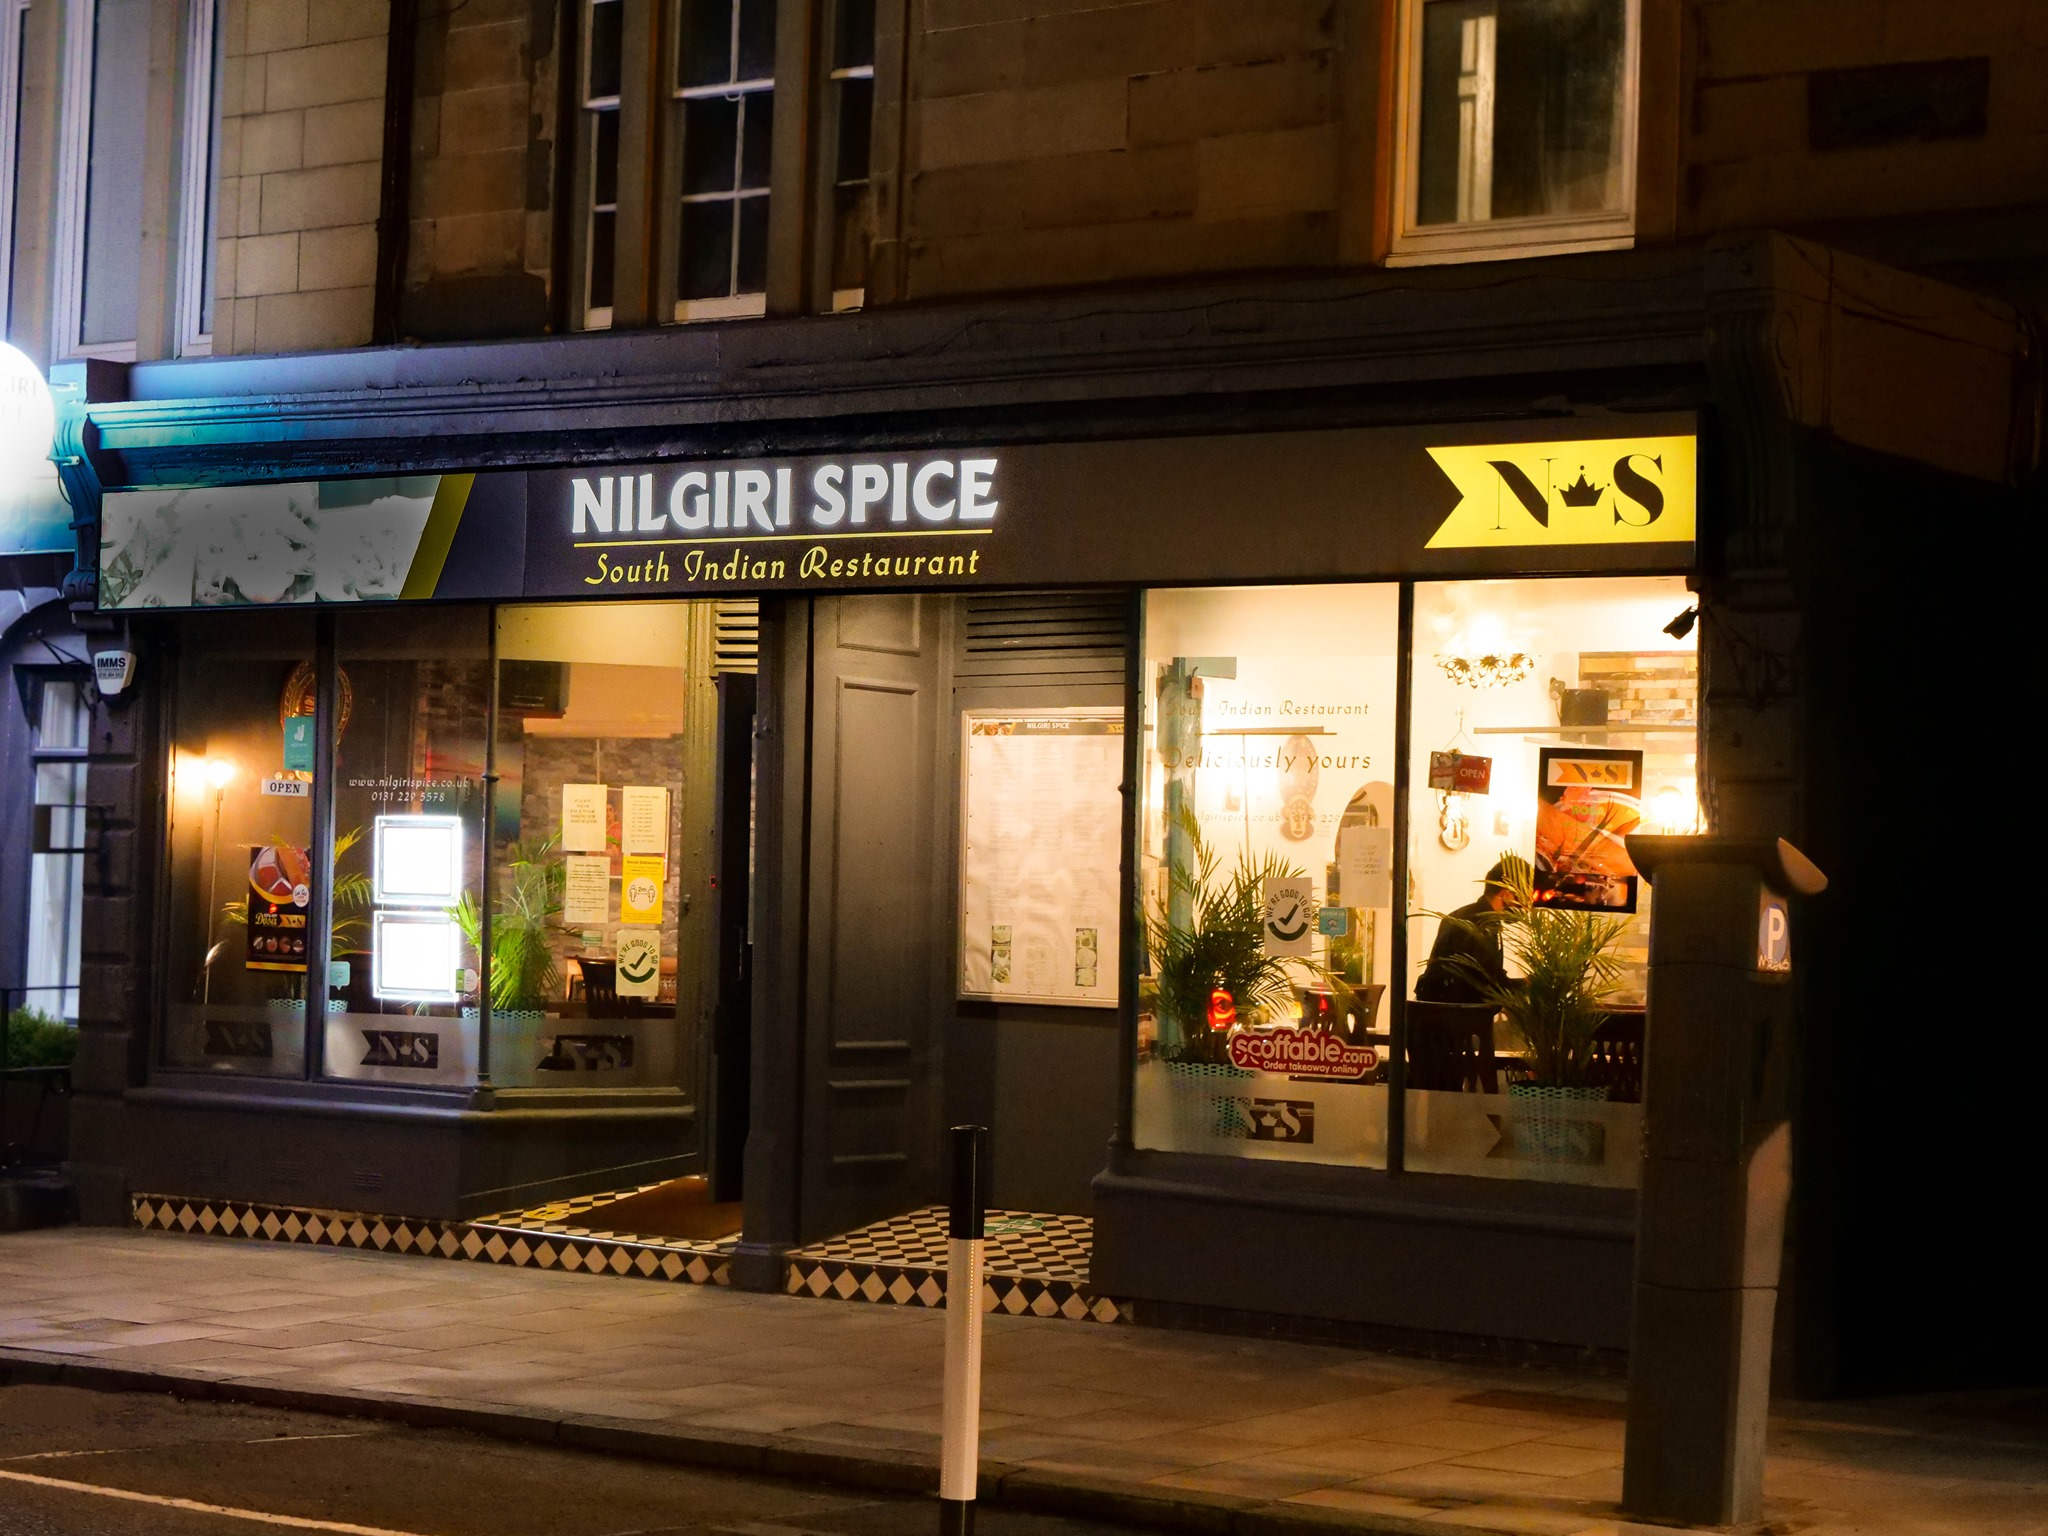 If you're hungry, this is the place to go! Best Indian Restaurant in Edinburgh